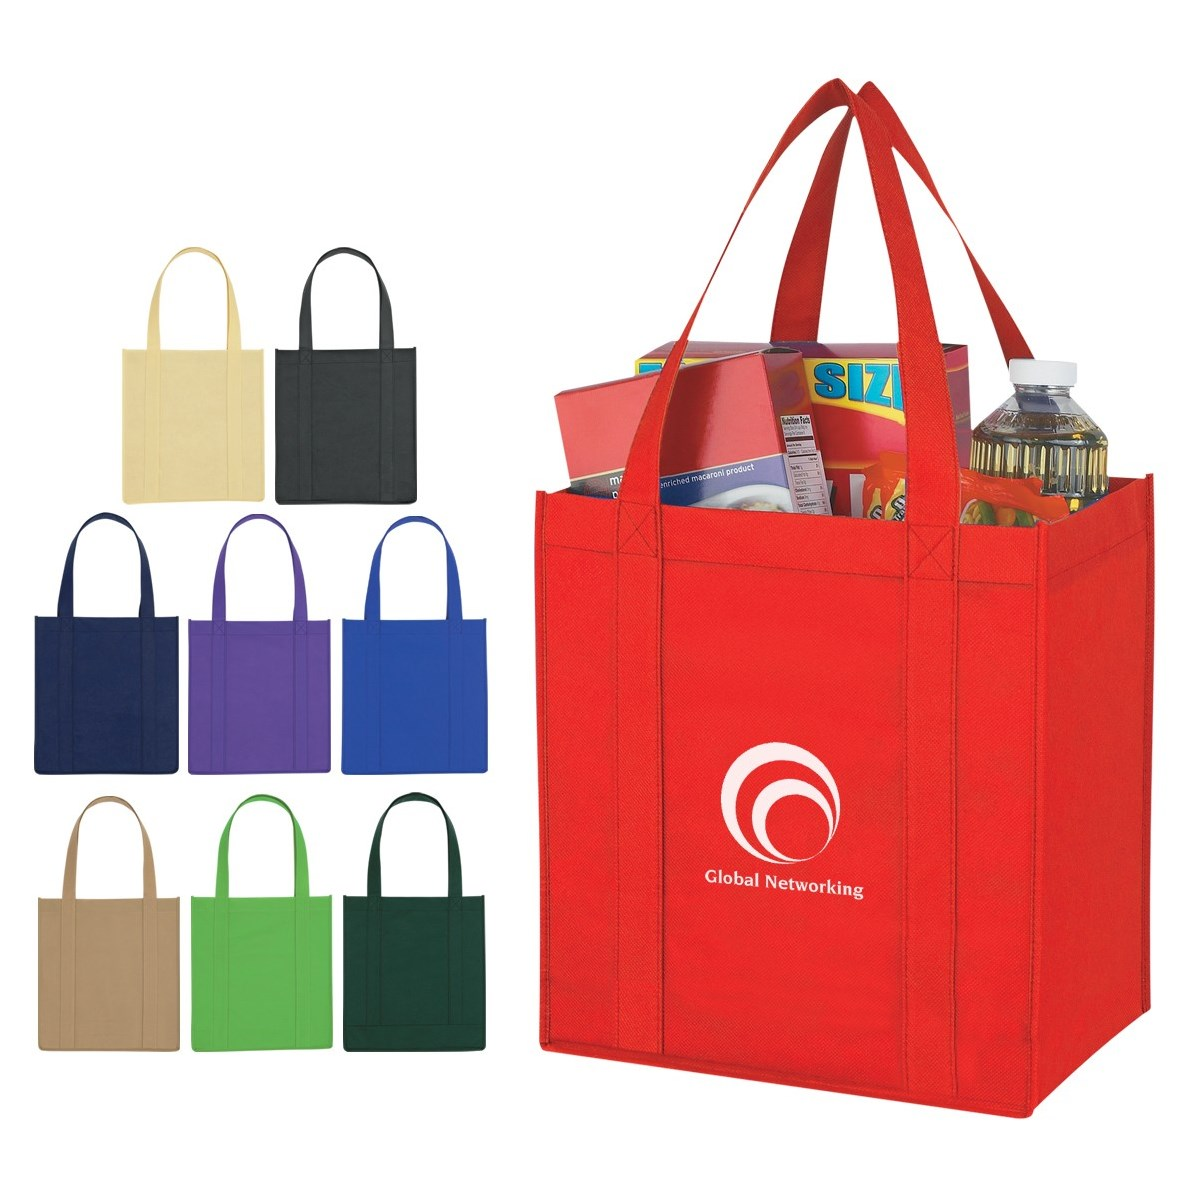 Recyclable Promotion Eco NonWoven Advertising Bag Popular Nonwoven Fabric Promotional Bag for Shopping